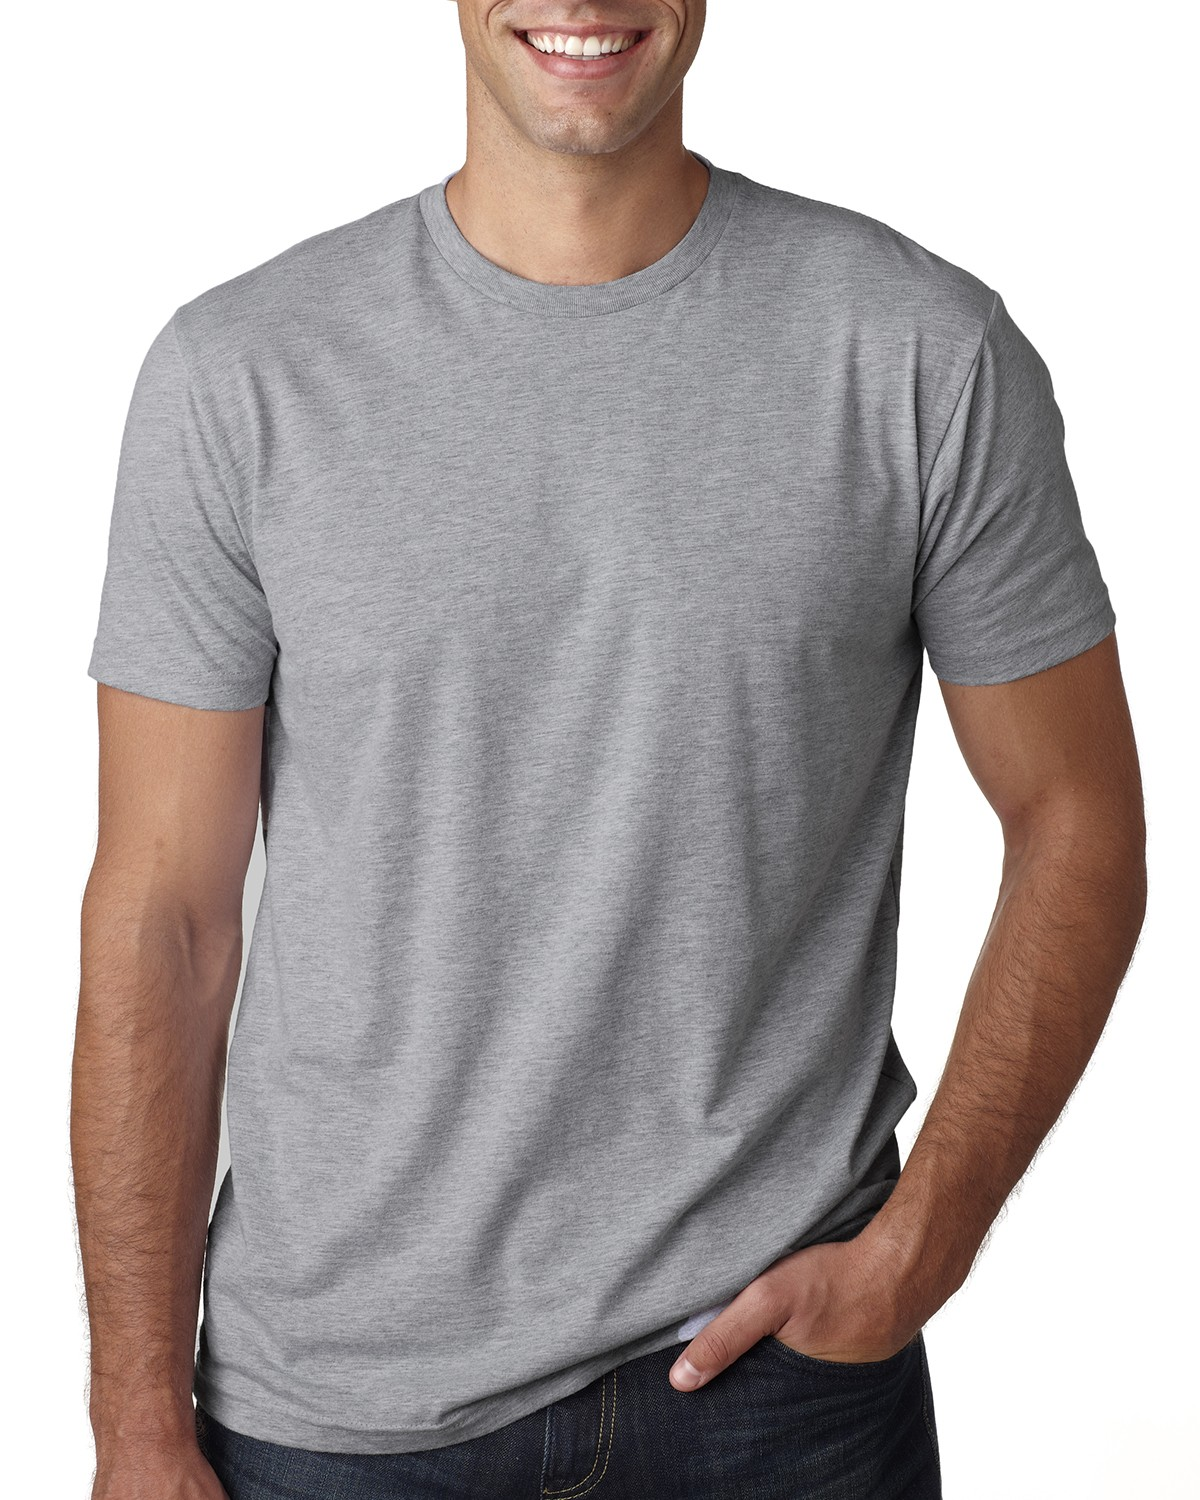 3600A Next Level HEATHER GRAY